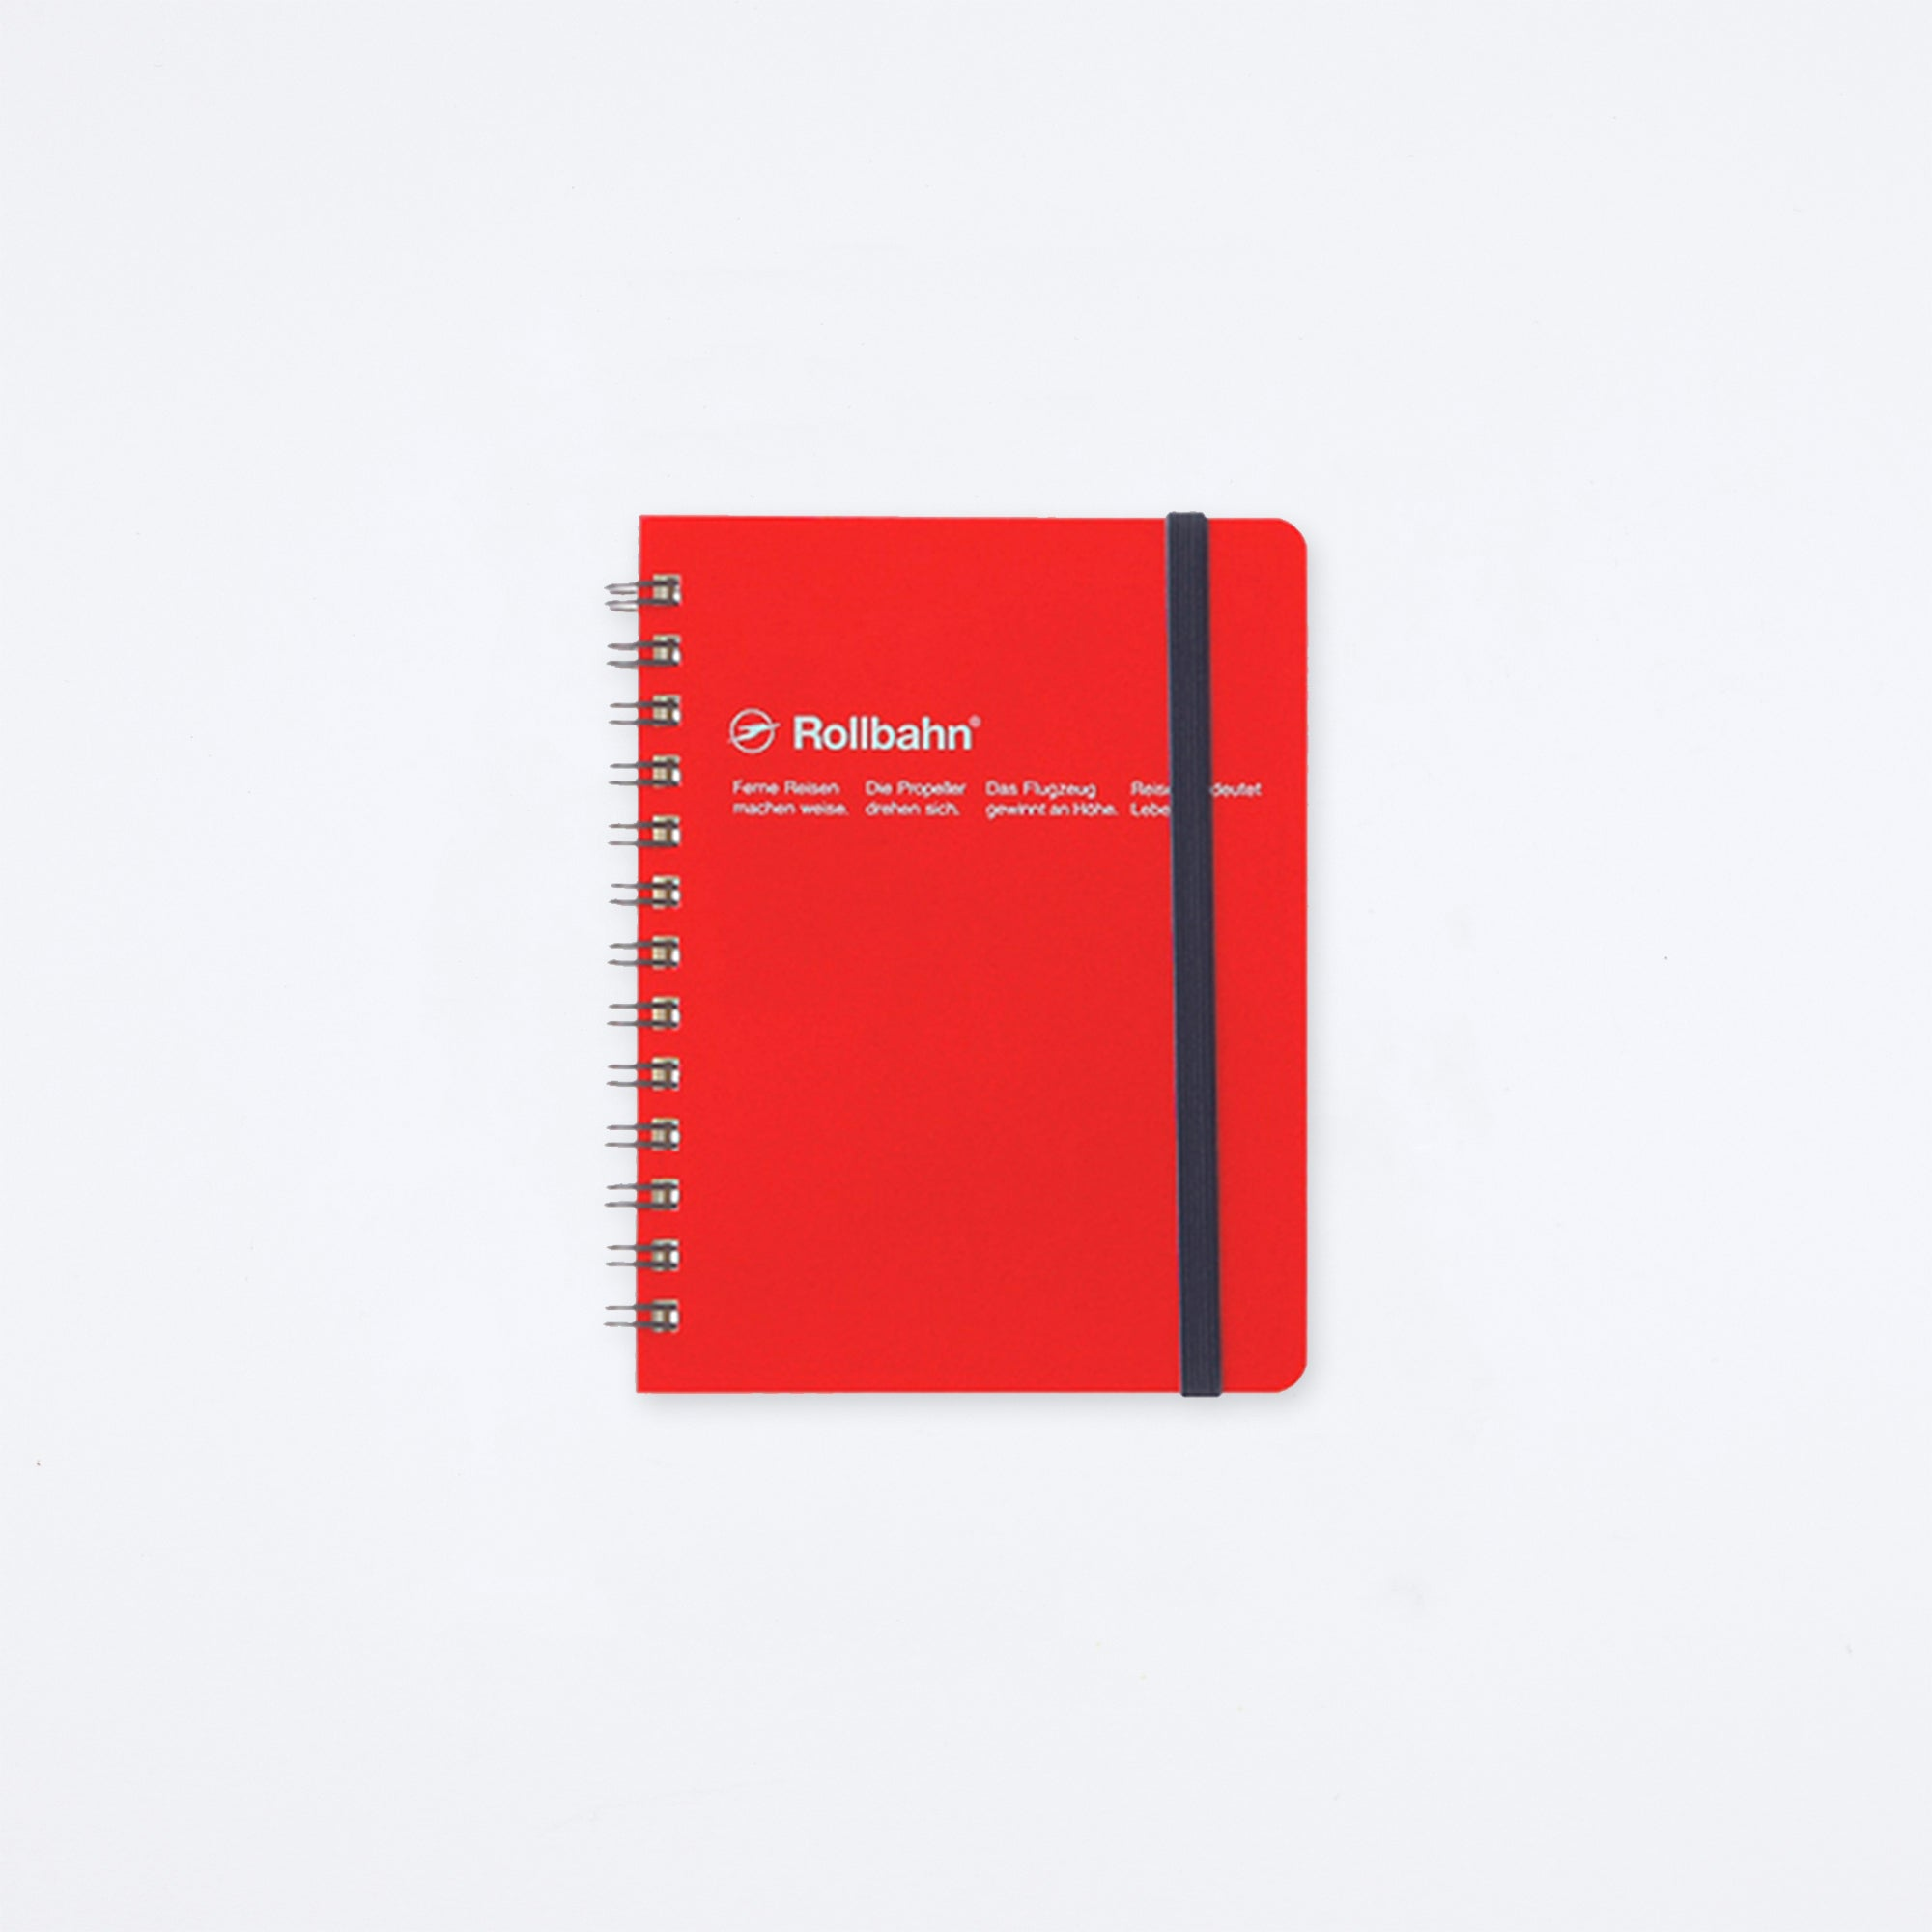 Rollbahn Spiral Pocket Memo Notebook